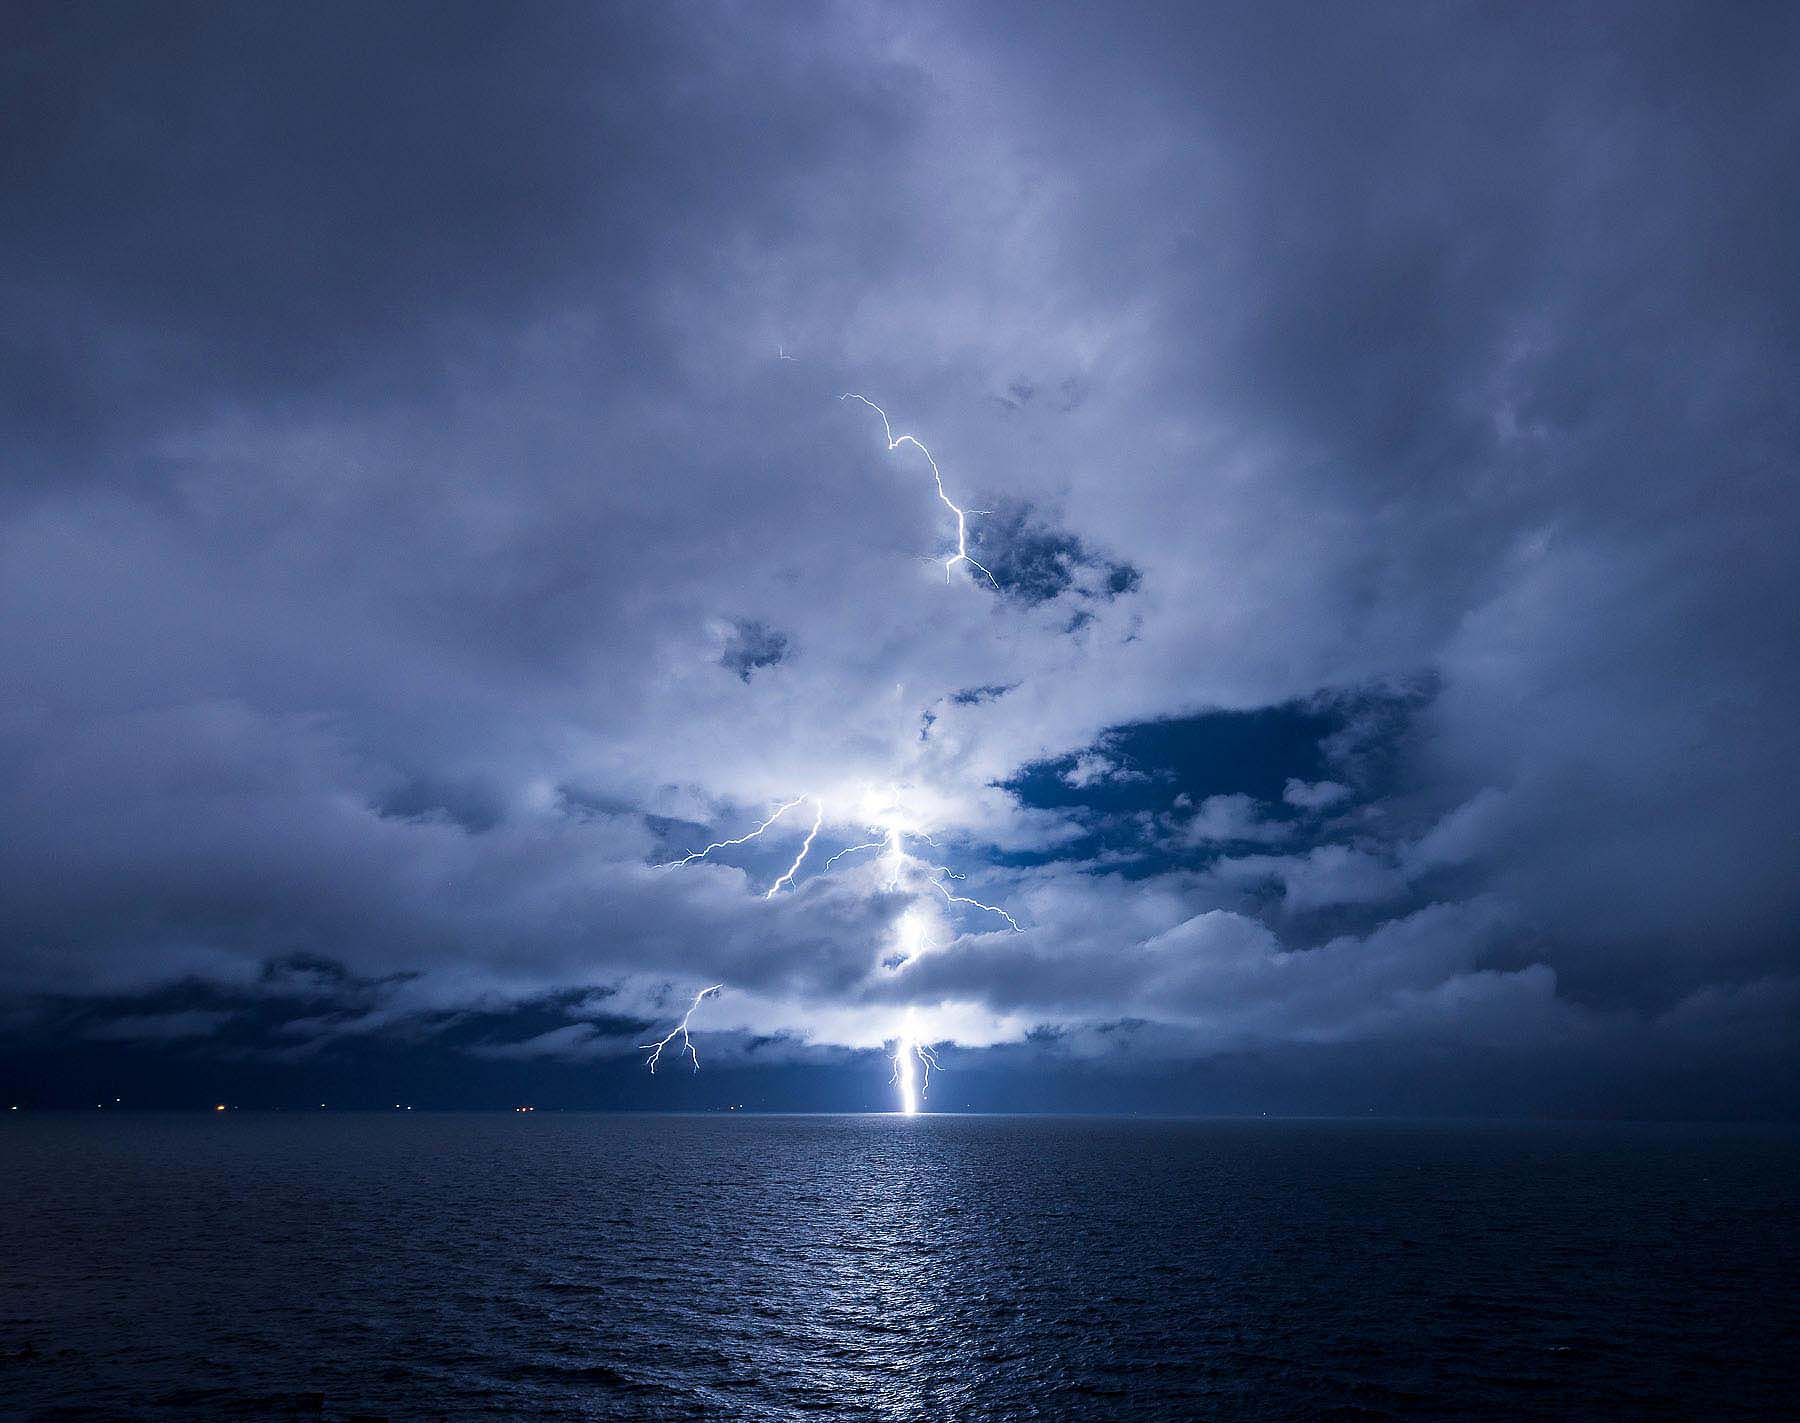 Lightening-Storm-Bolt-Night-Lake-Titicaca-Bolivia-Travel